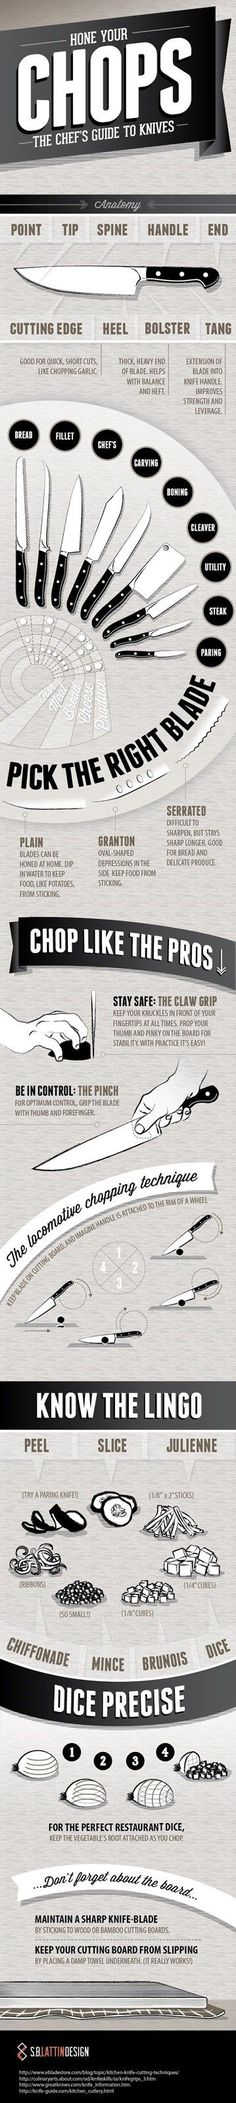 Knife Guide of the Day